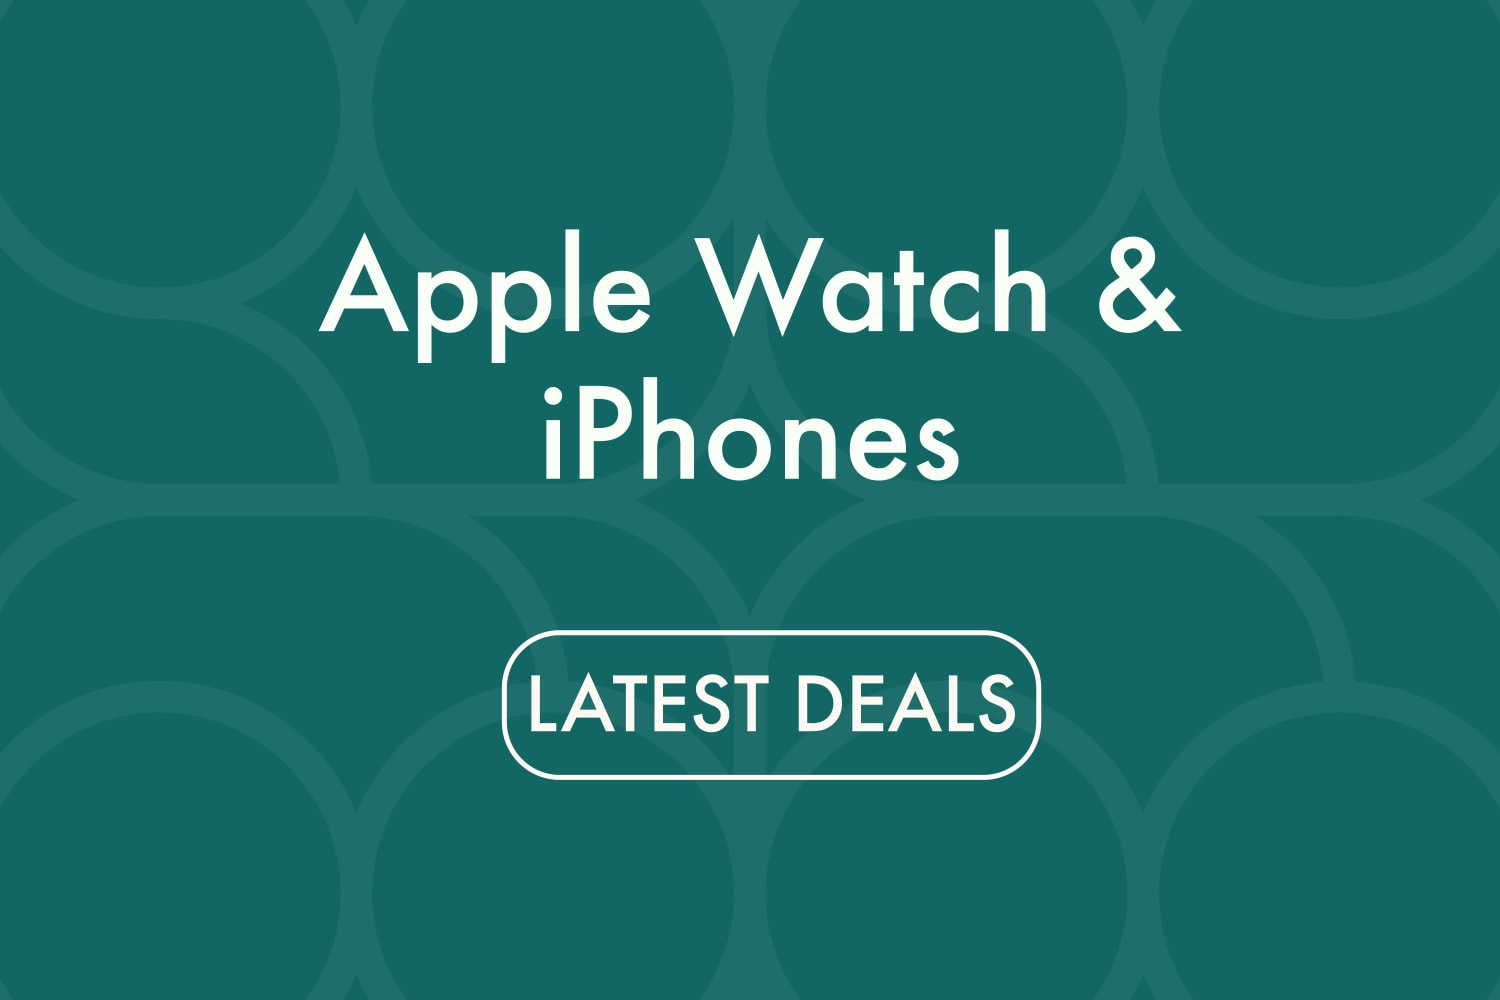 latest-apple-watch-and-iphone-deals-on-amazon-and-woot-20200928-1